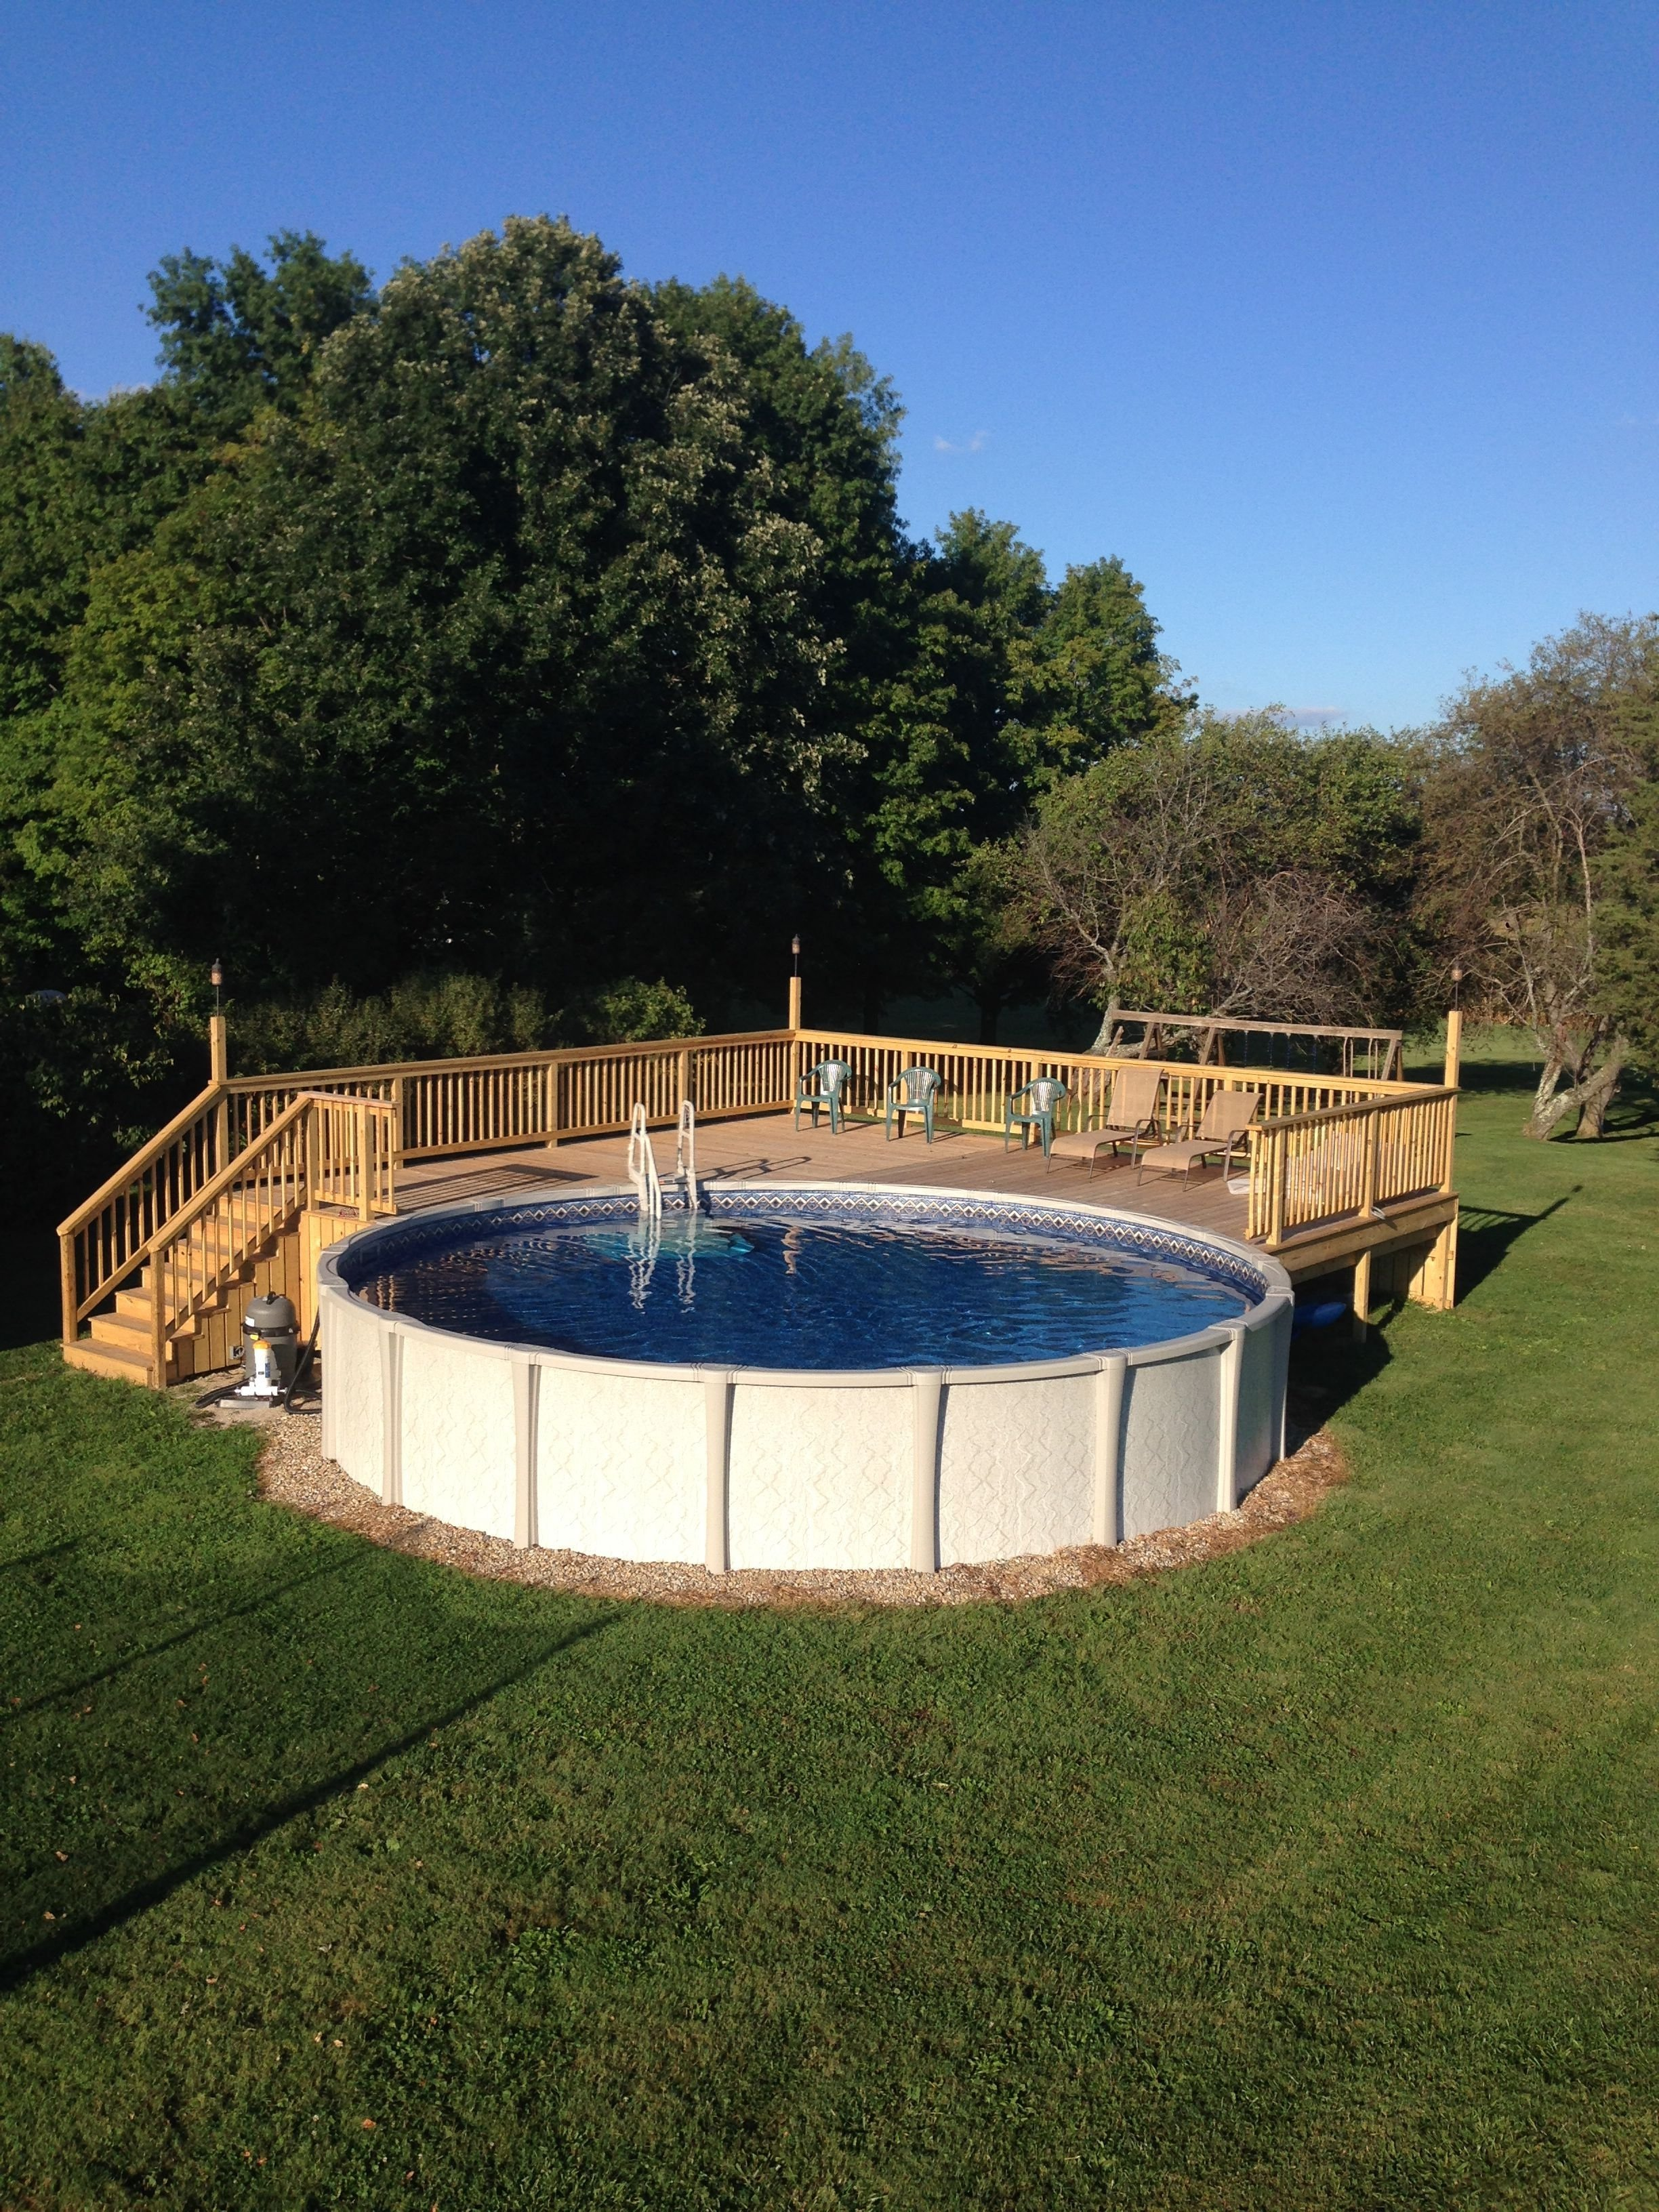 10 Stylish Pool Deck Ideas Above Ground above ground pool deck for 24 ft round pool deck is 28x28